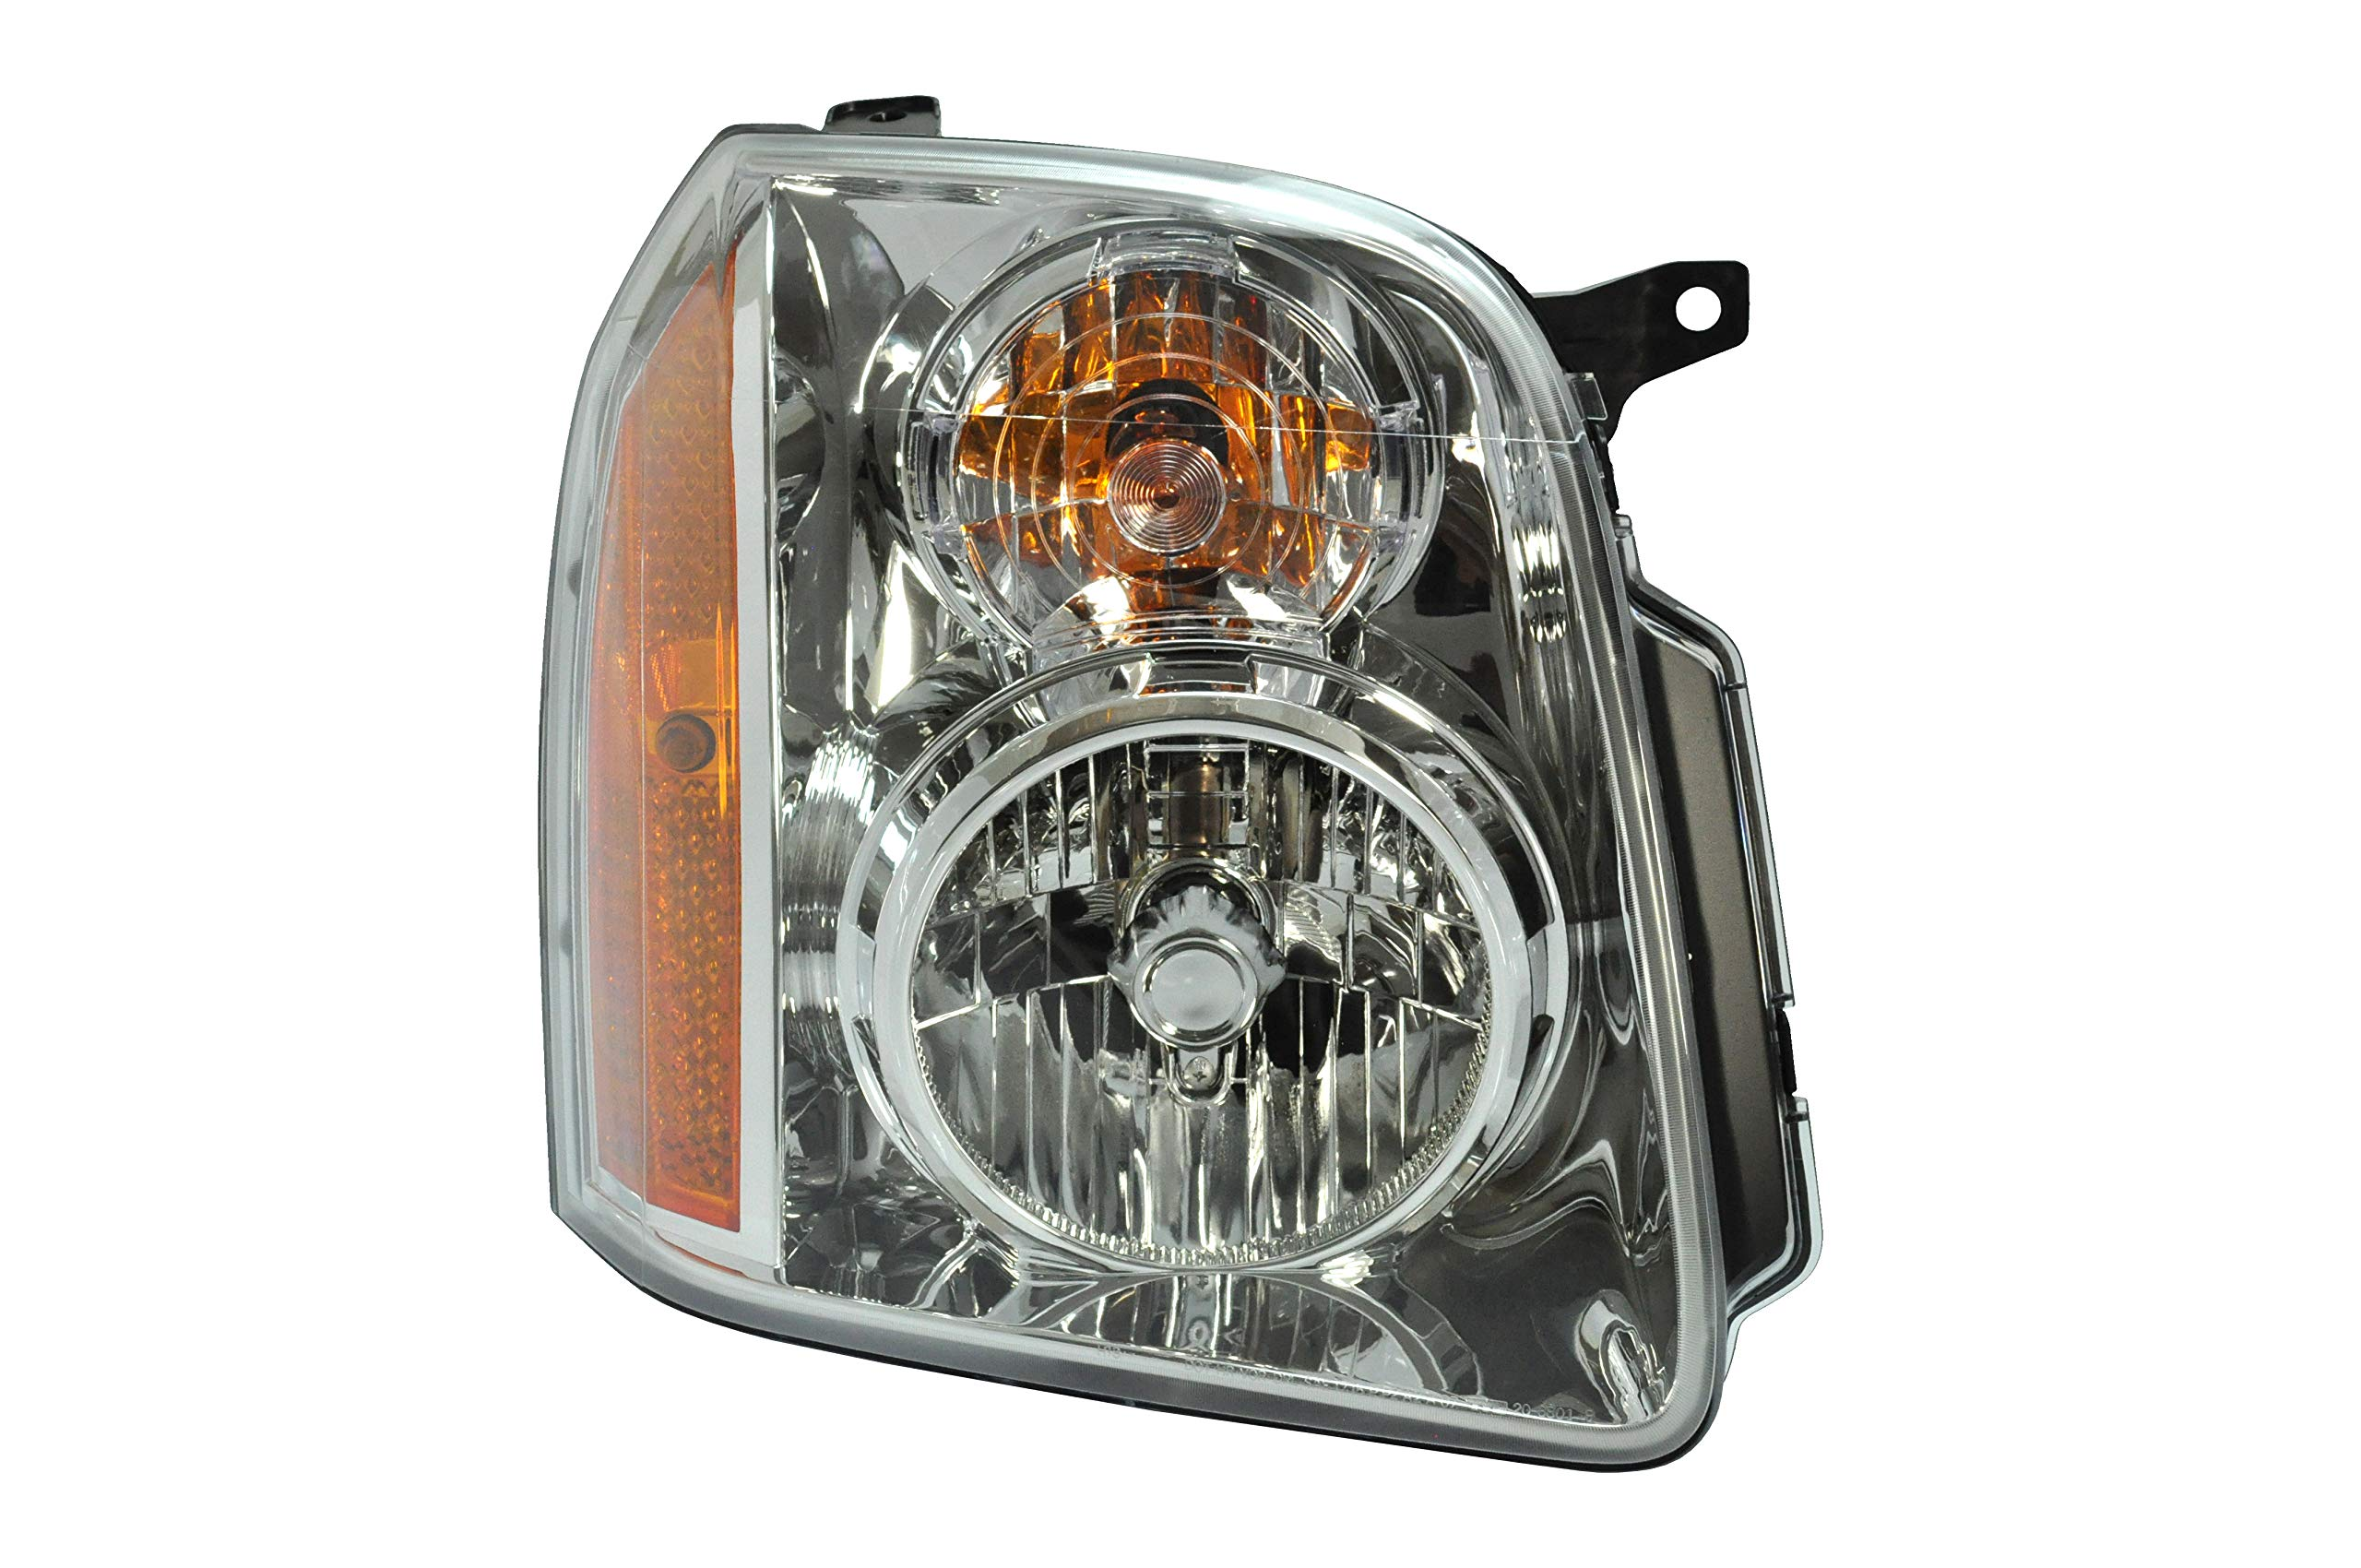 Passenger Side Headlight Headlamp for 2007-2014 GMC Yukon, Yukon XL GM2503265 20969895 - Includes the Bulb